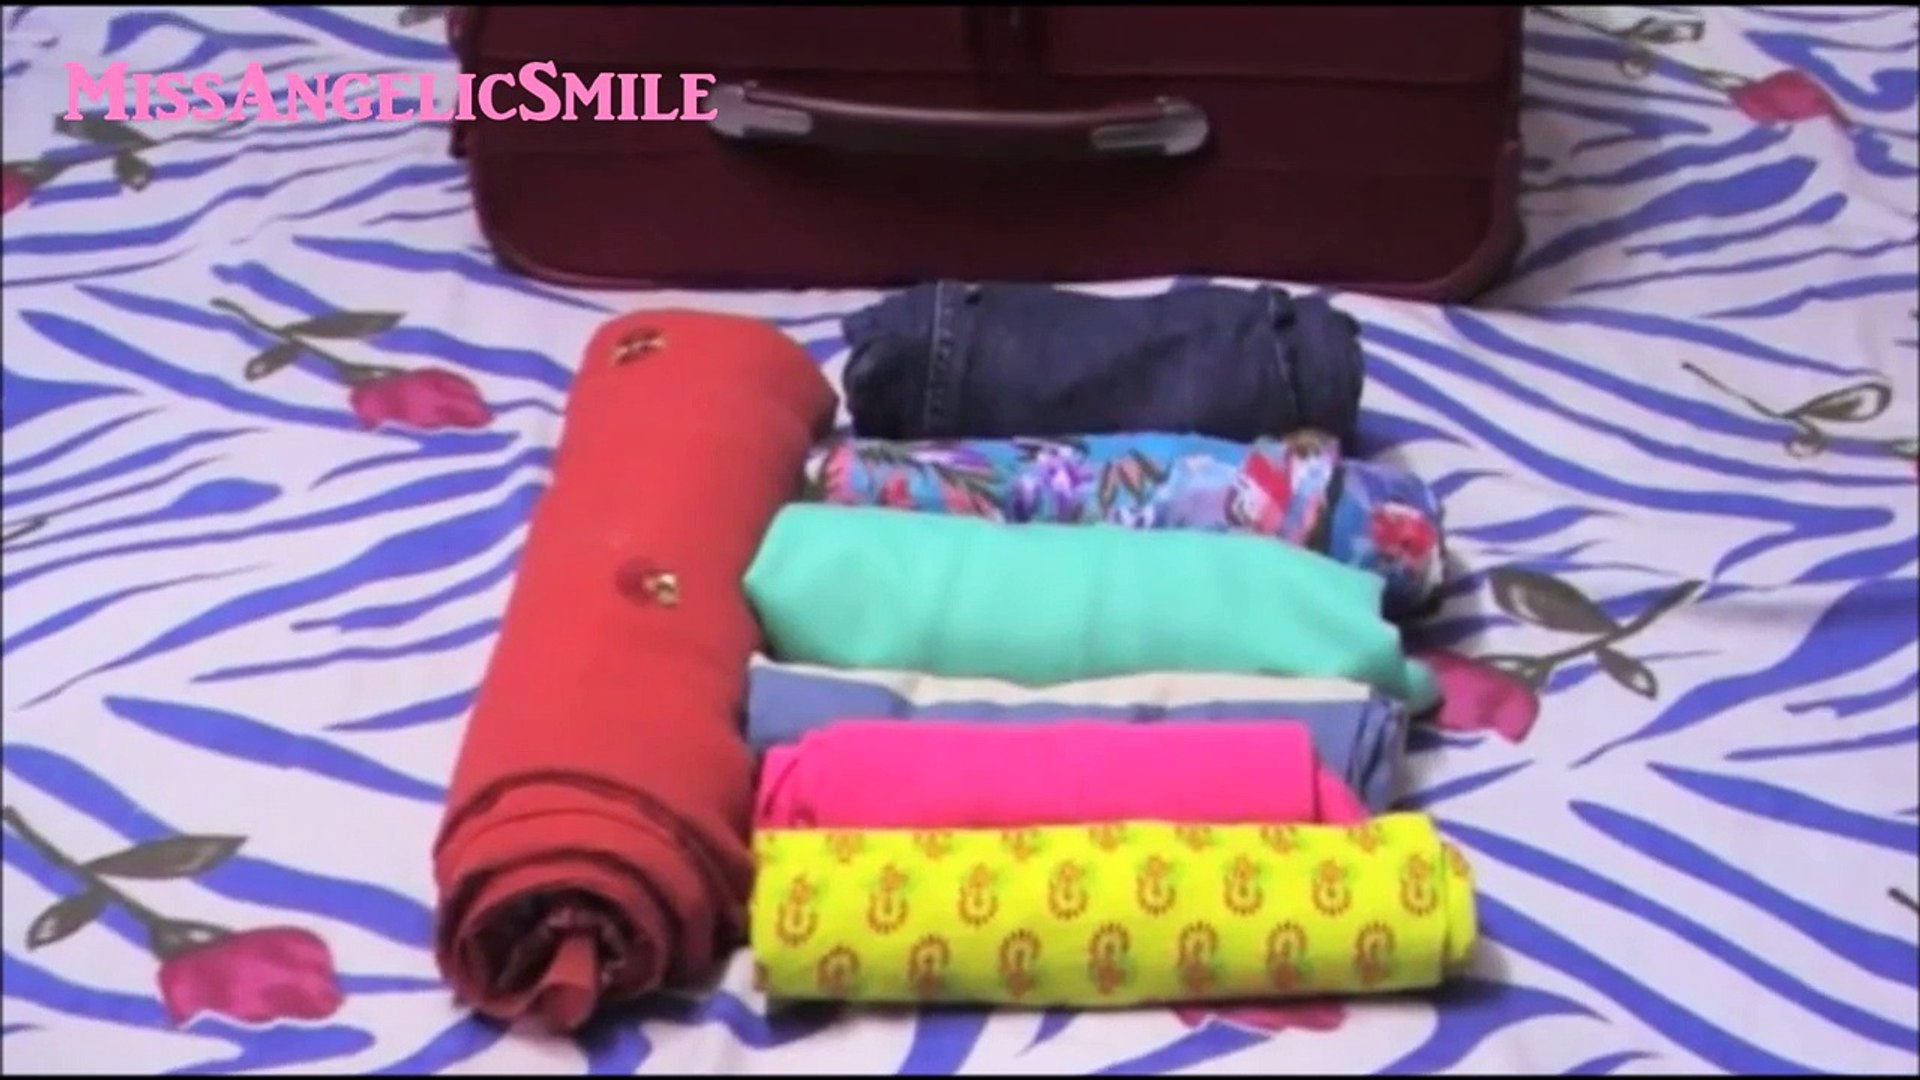 Travel - Packing Tips & Tricks: How to Roll clothes to Maximize Luggage Space | MissAngelicSmile